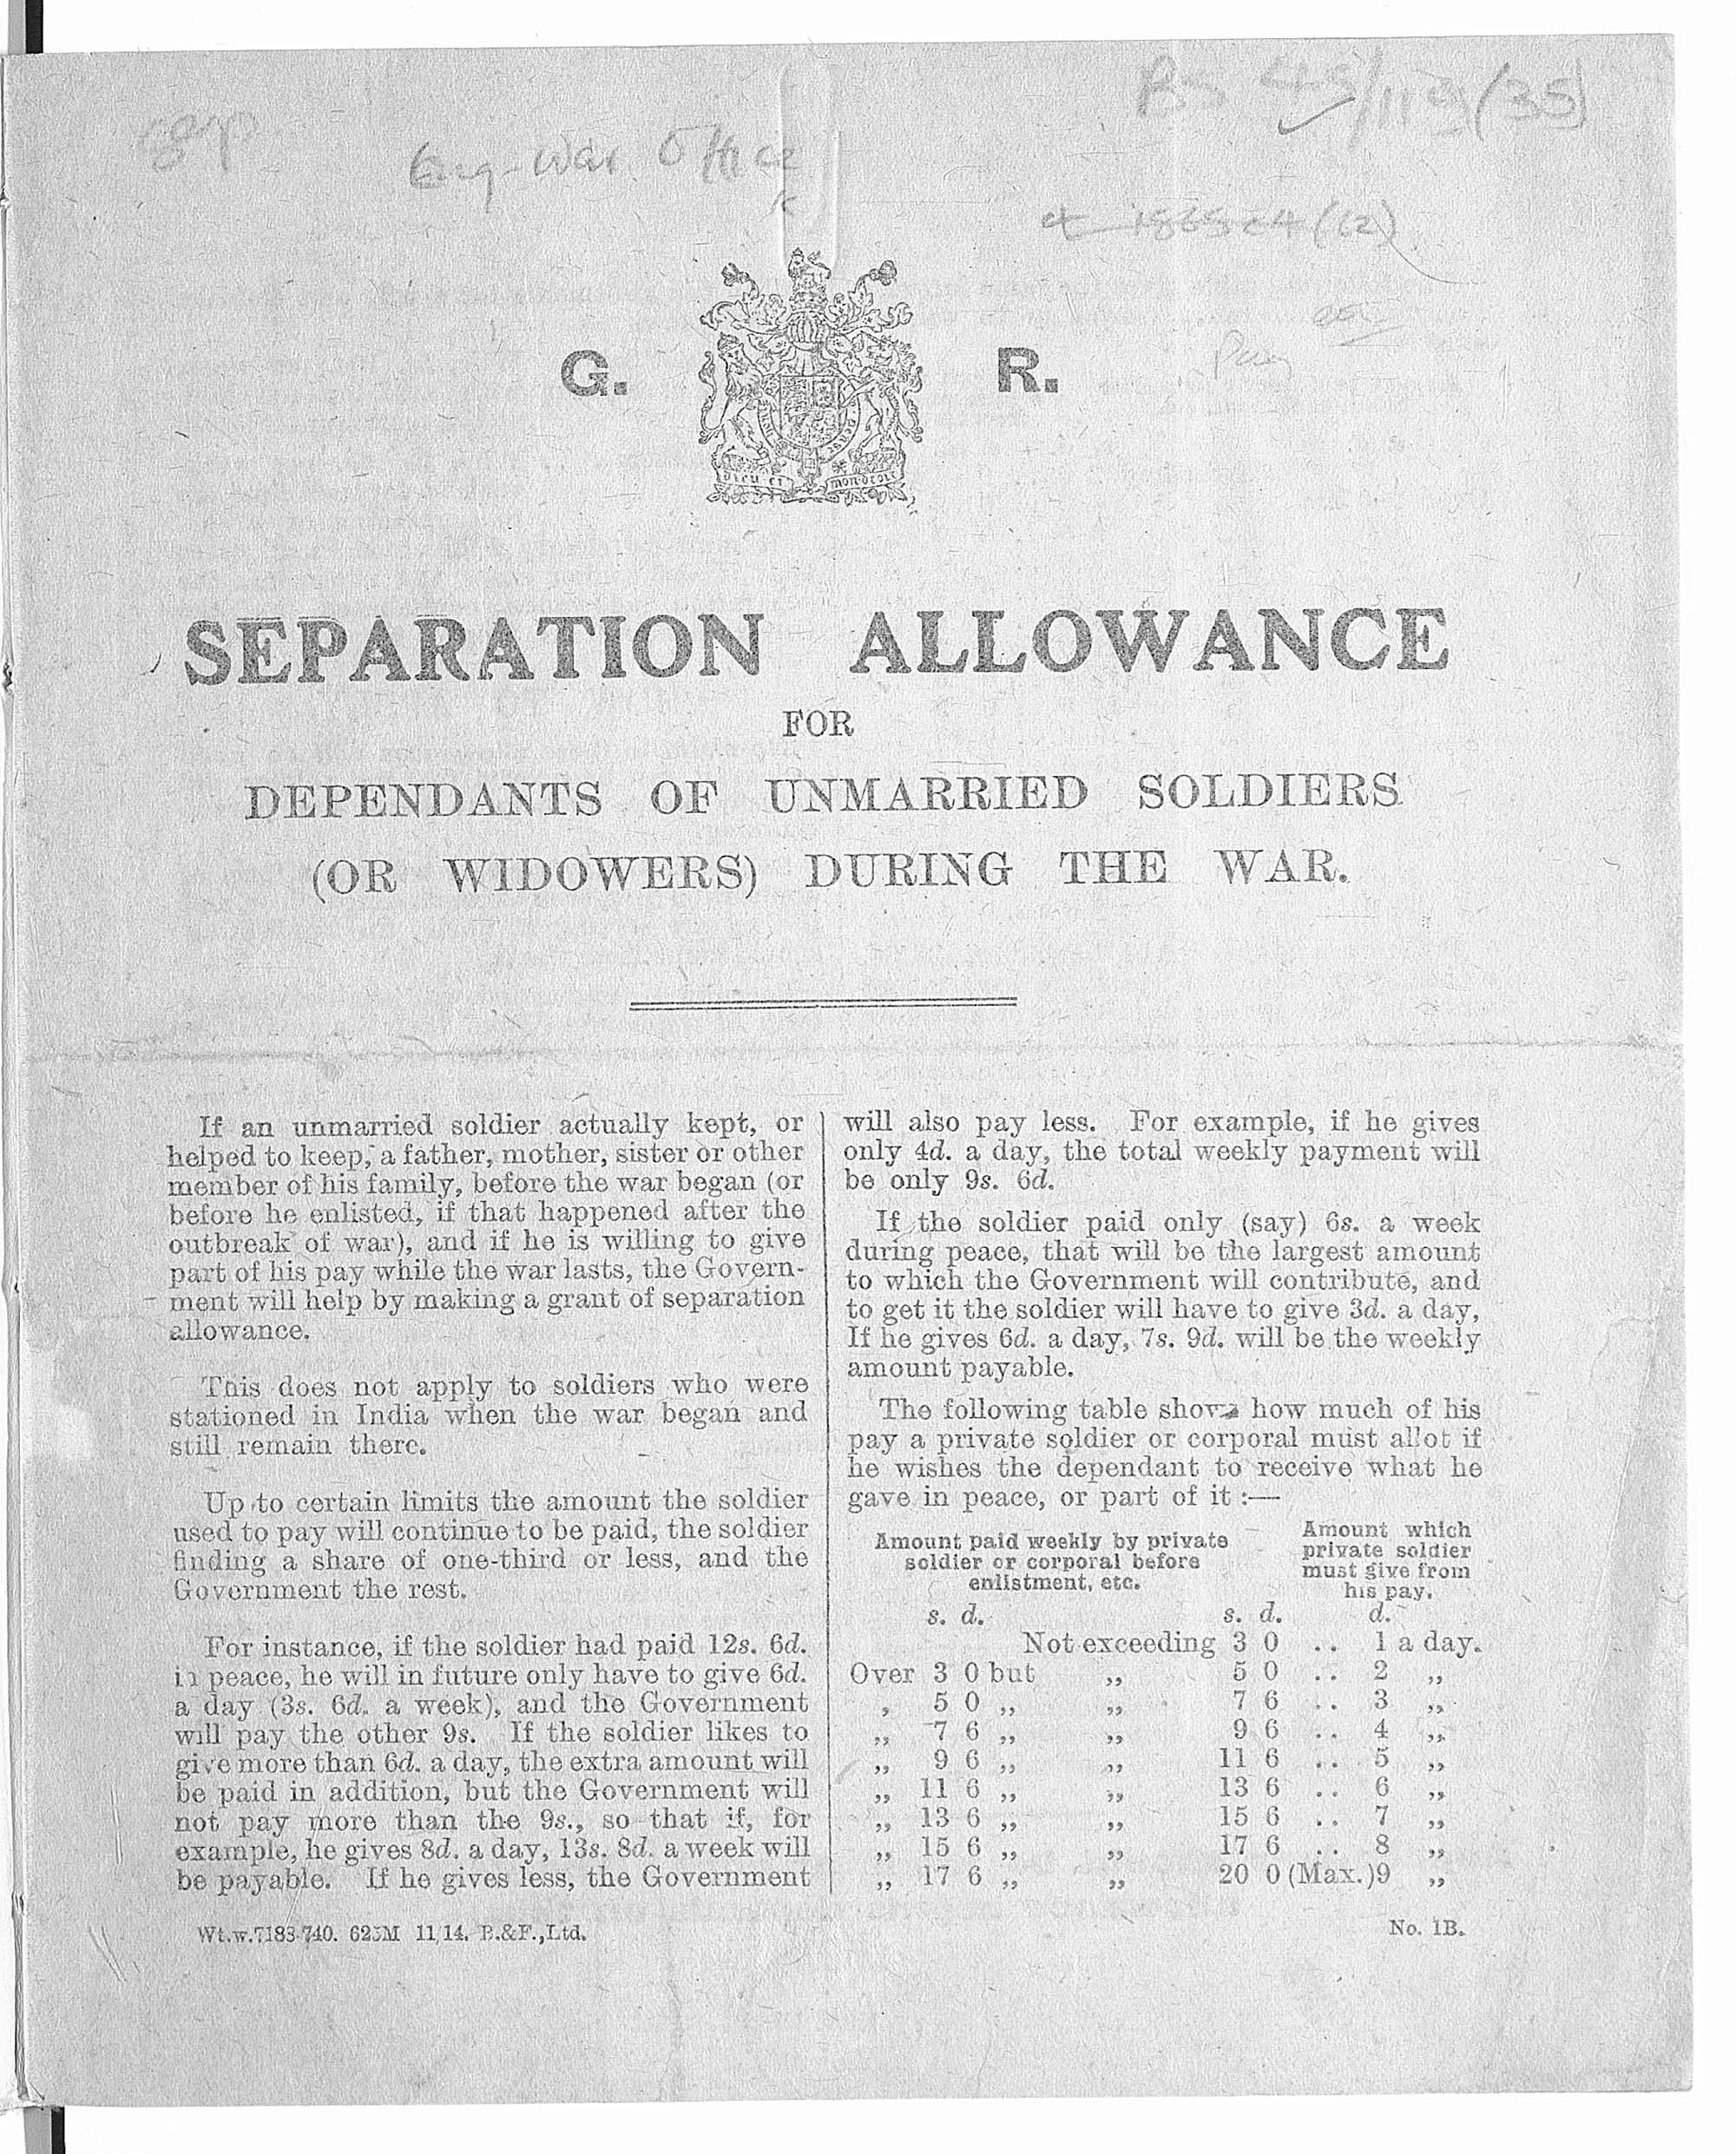 Separation allowance for dependents of unmarried soldiers, or widowers, during the war.